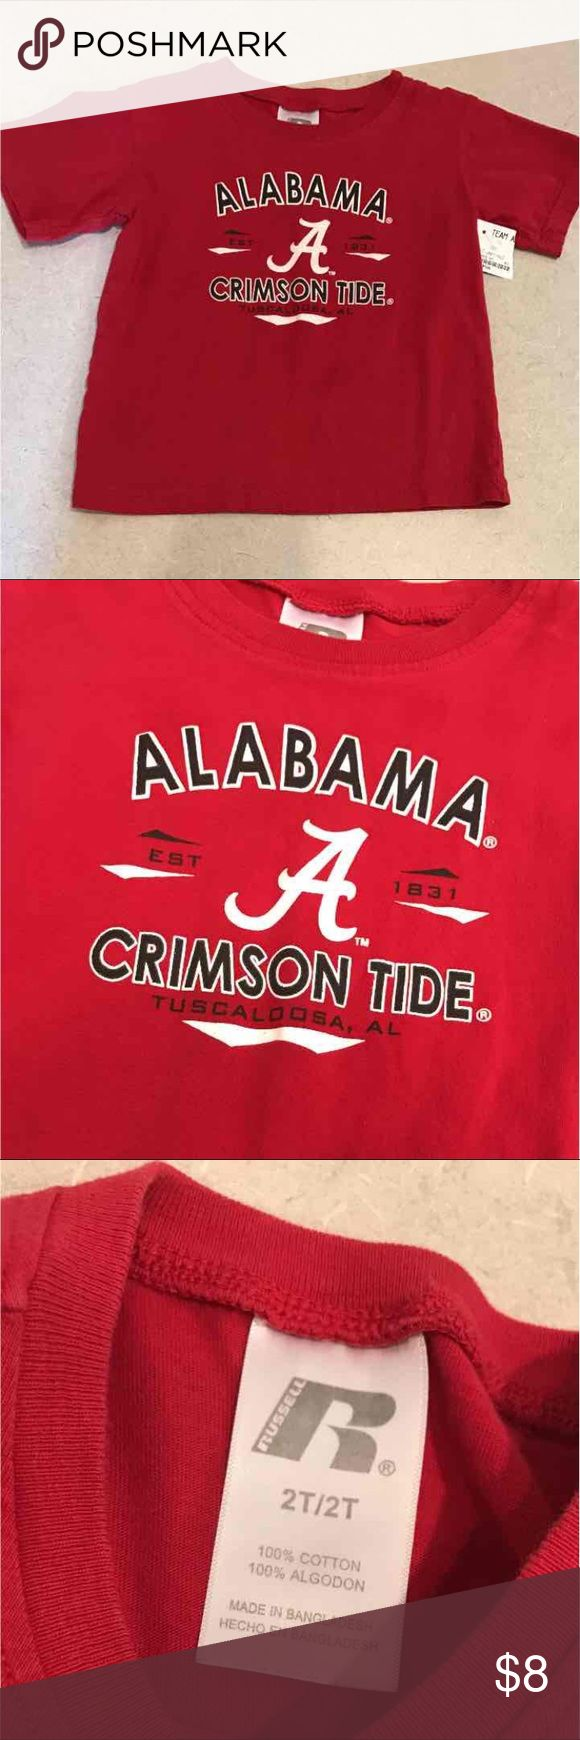 Alabama Shirt Good Condition size 2T Shirts & Tops Tees - Short Sleeve